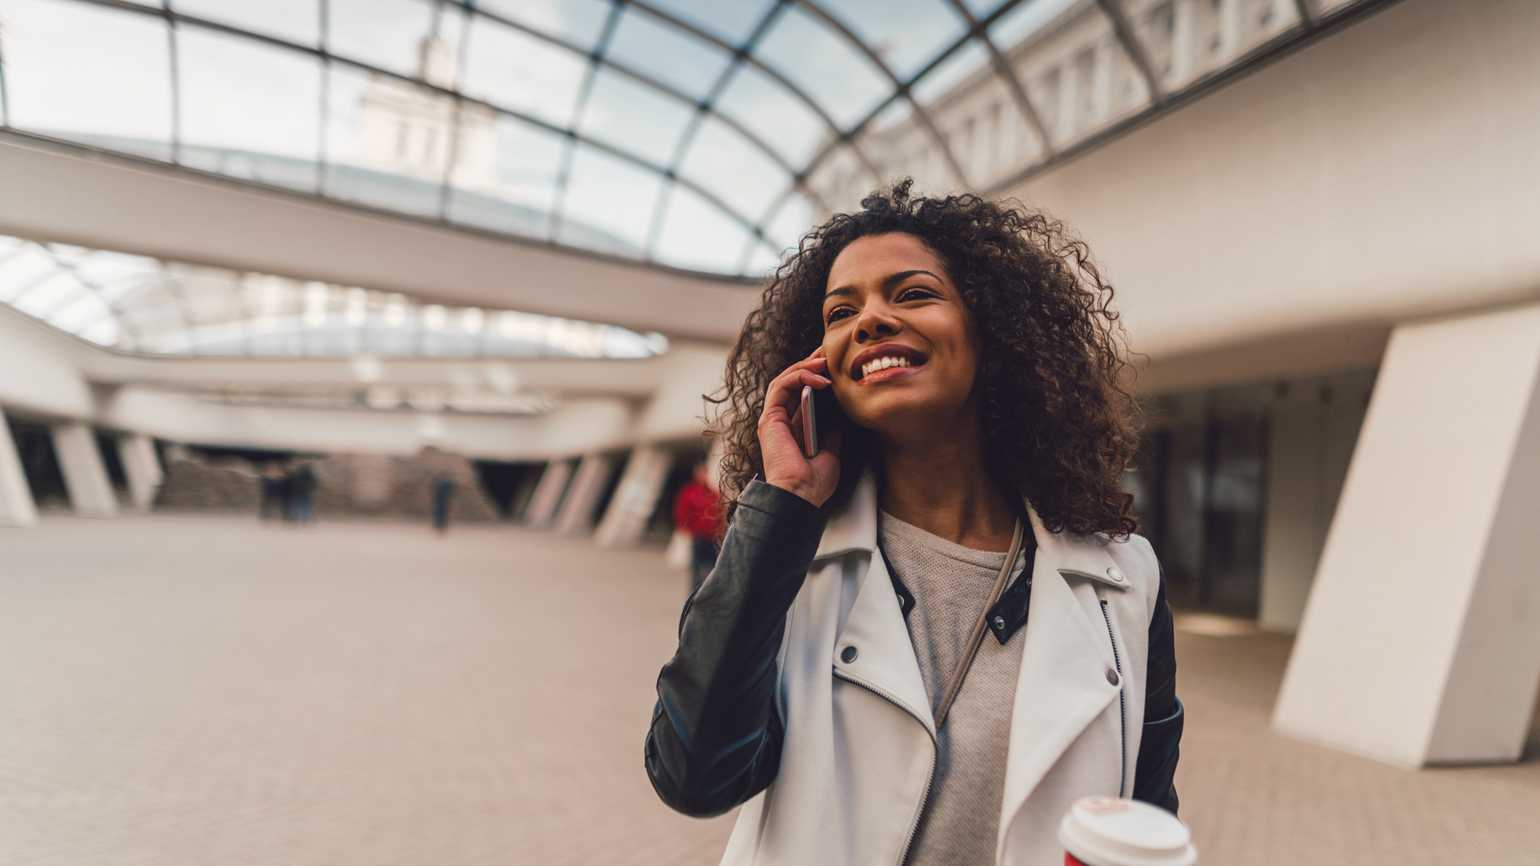 Mixed race woman enjoying a phone call in the subway station.